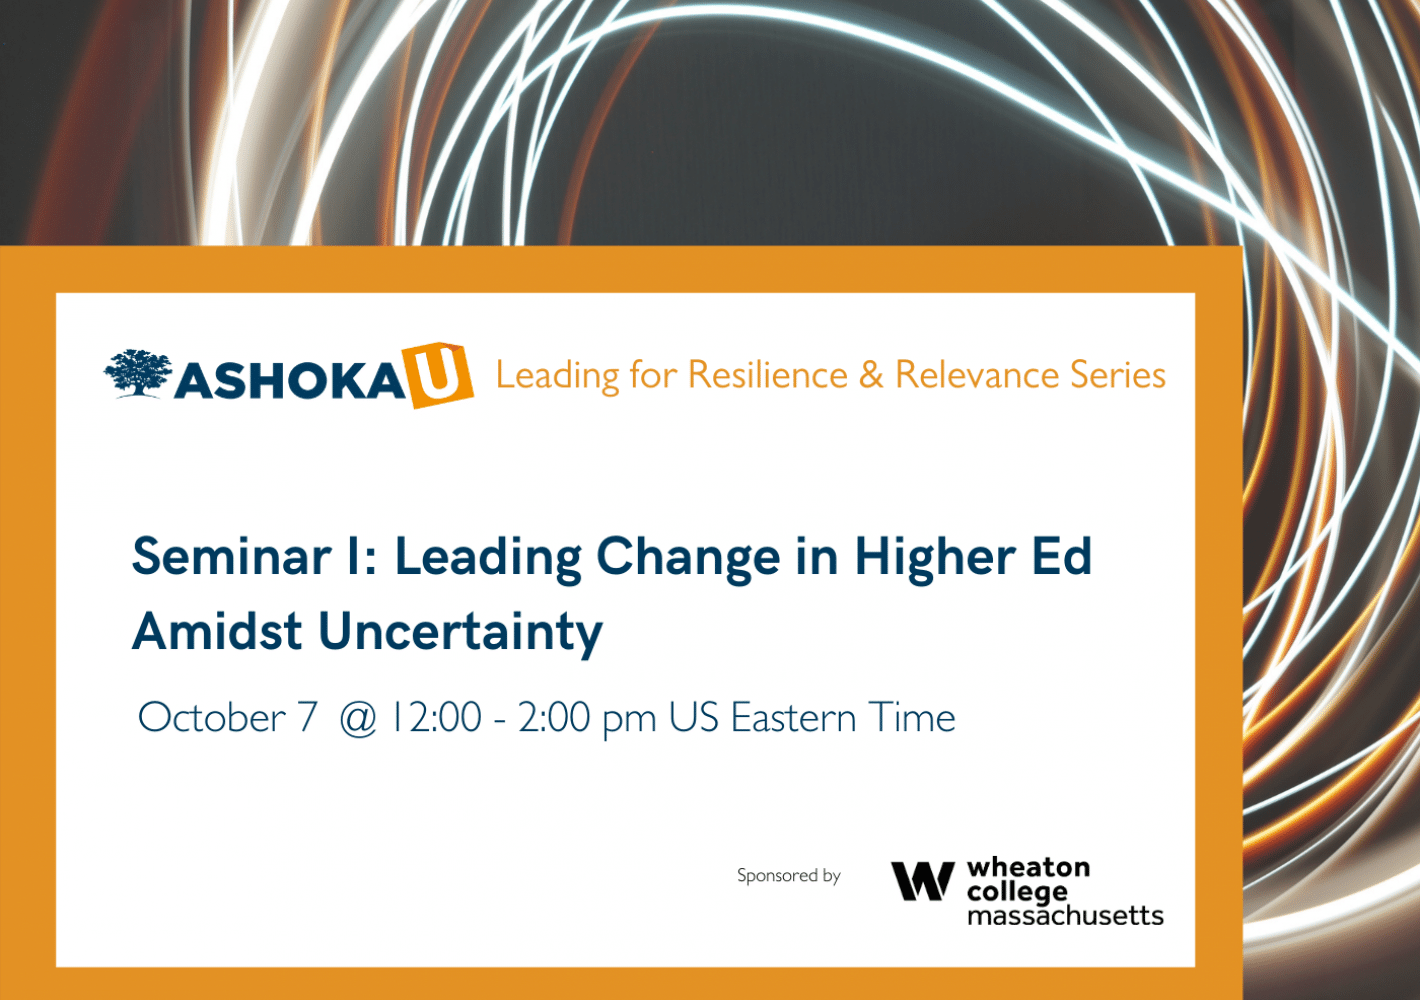 The background is black with circles of white and orange light. In the bottom half of the image is an orange border with a white box. At the top of the white box is text that reads Ashoka U Leading for Resilience and Relevance in Higher Ed. Below that is large blue text that read Seminar I: Leading Change in Higher Ed Amidst Uncertainty, October 7 @ 12:00 - 2:00 pm US Eastern Time. Below that in the bottom right corner of the white box is the black text, sponsored by Wheaton College Massachusetts.